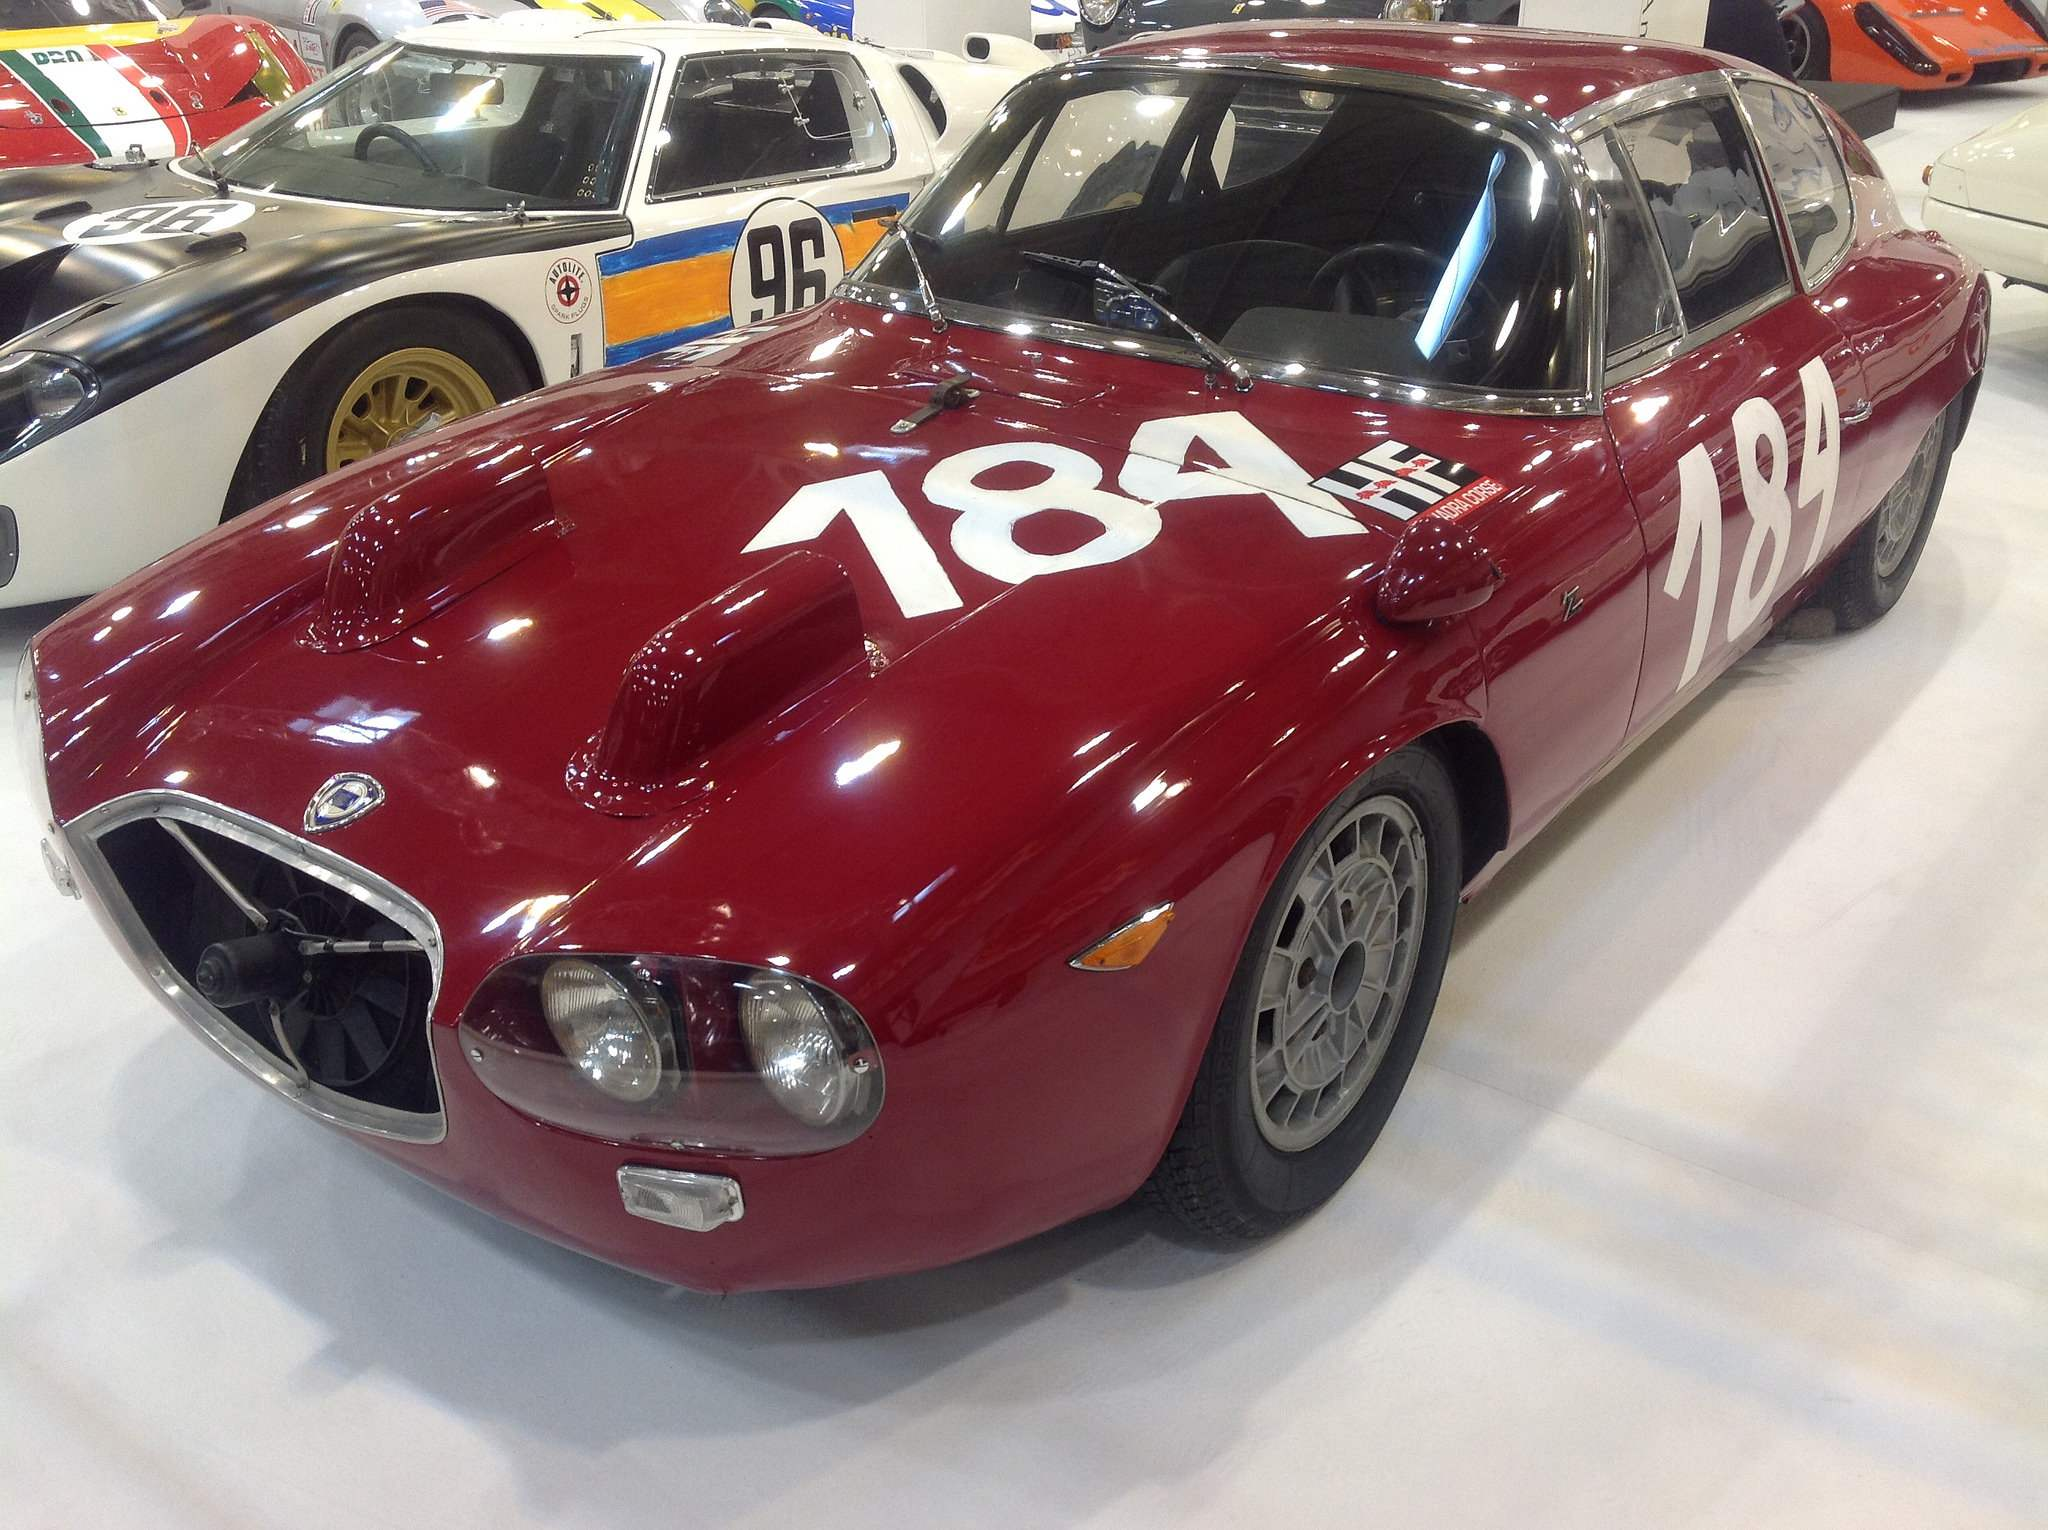 techno classica4 Classic Cars at Techno Classica Essen 2016